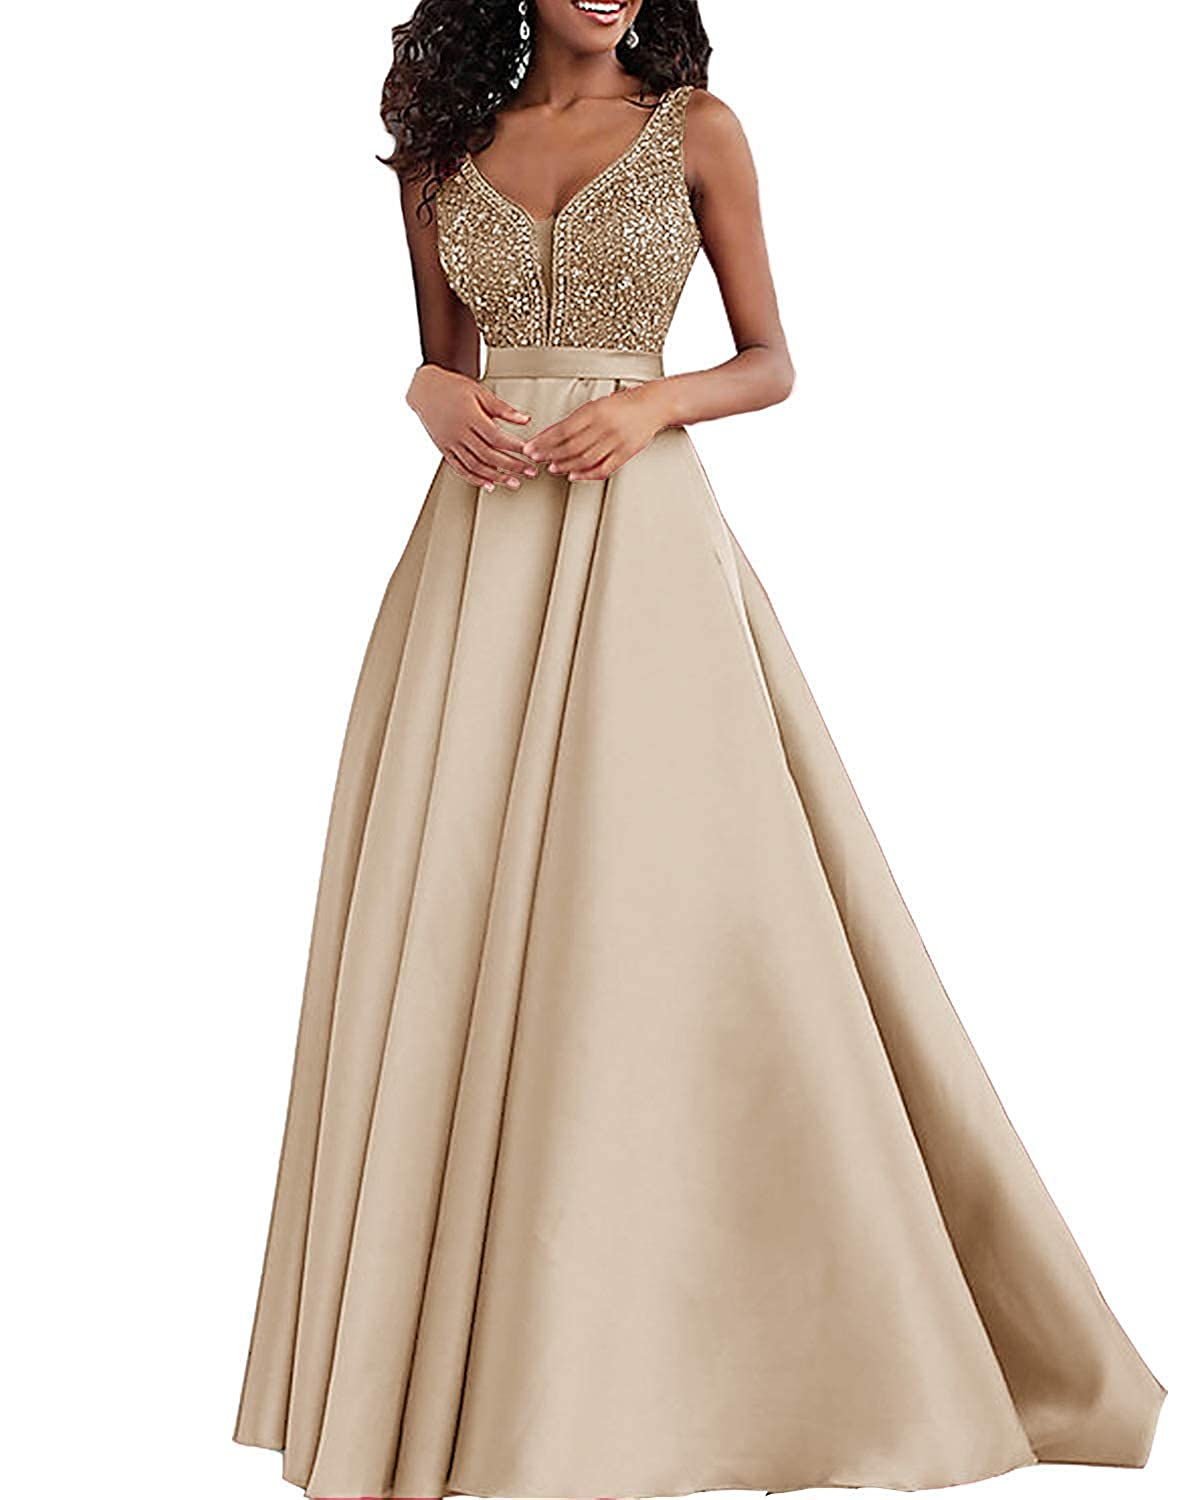 Champagne Sulidi Womens Double V Neck Prom Dresses 2019 Long Beaded Formal Evening Wedding Party GownsC148